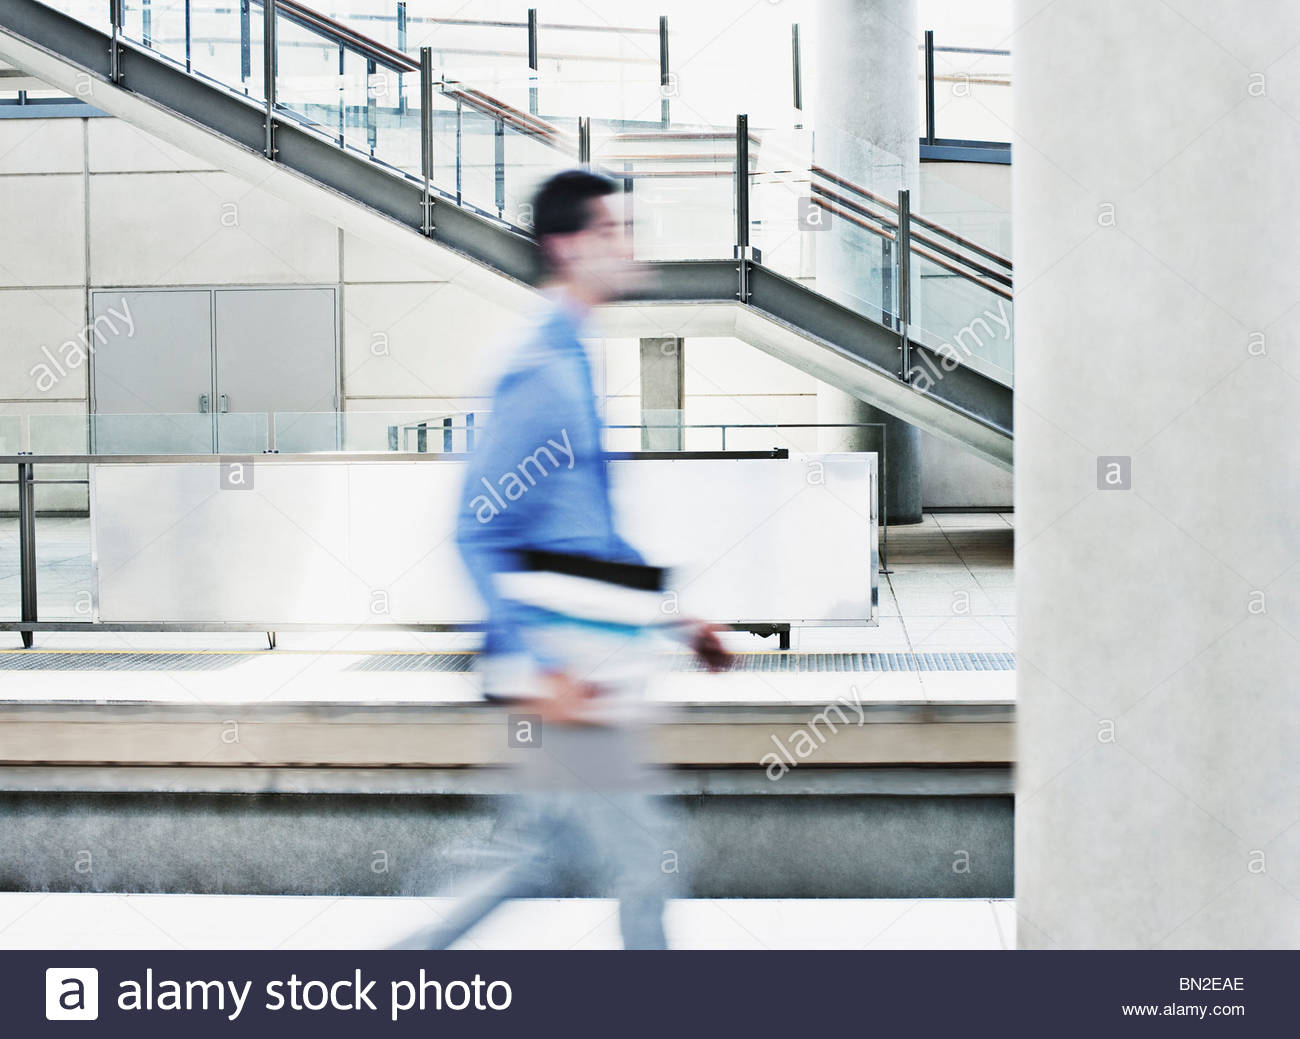 Businessman rushing on train platform - Stock Image